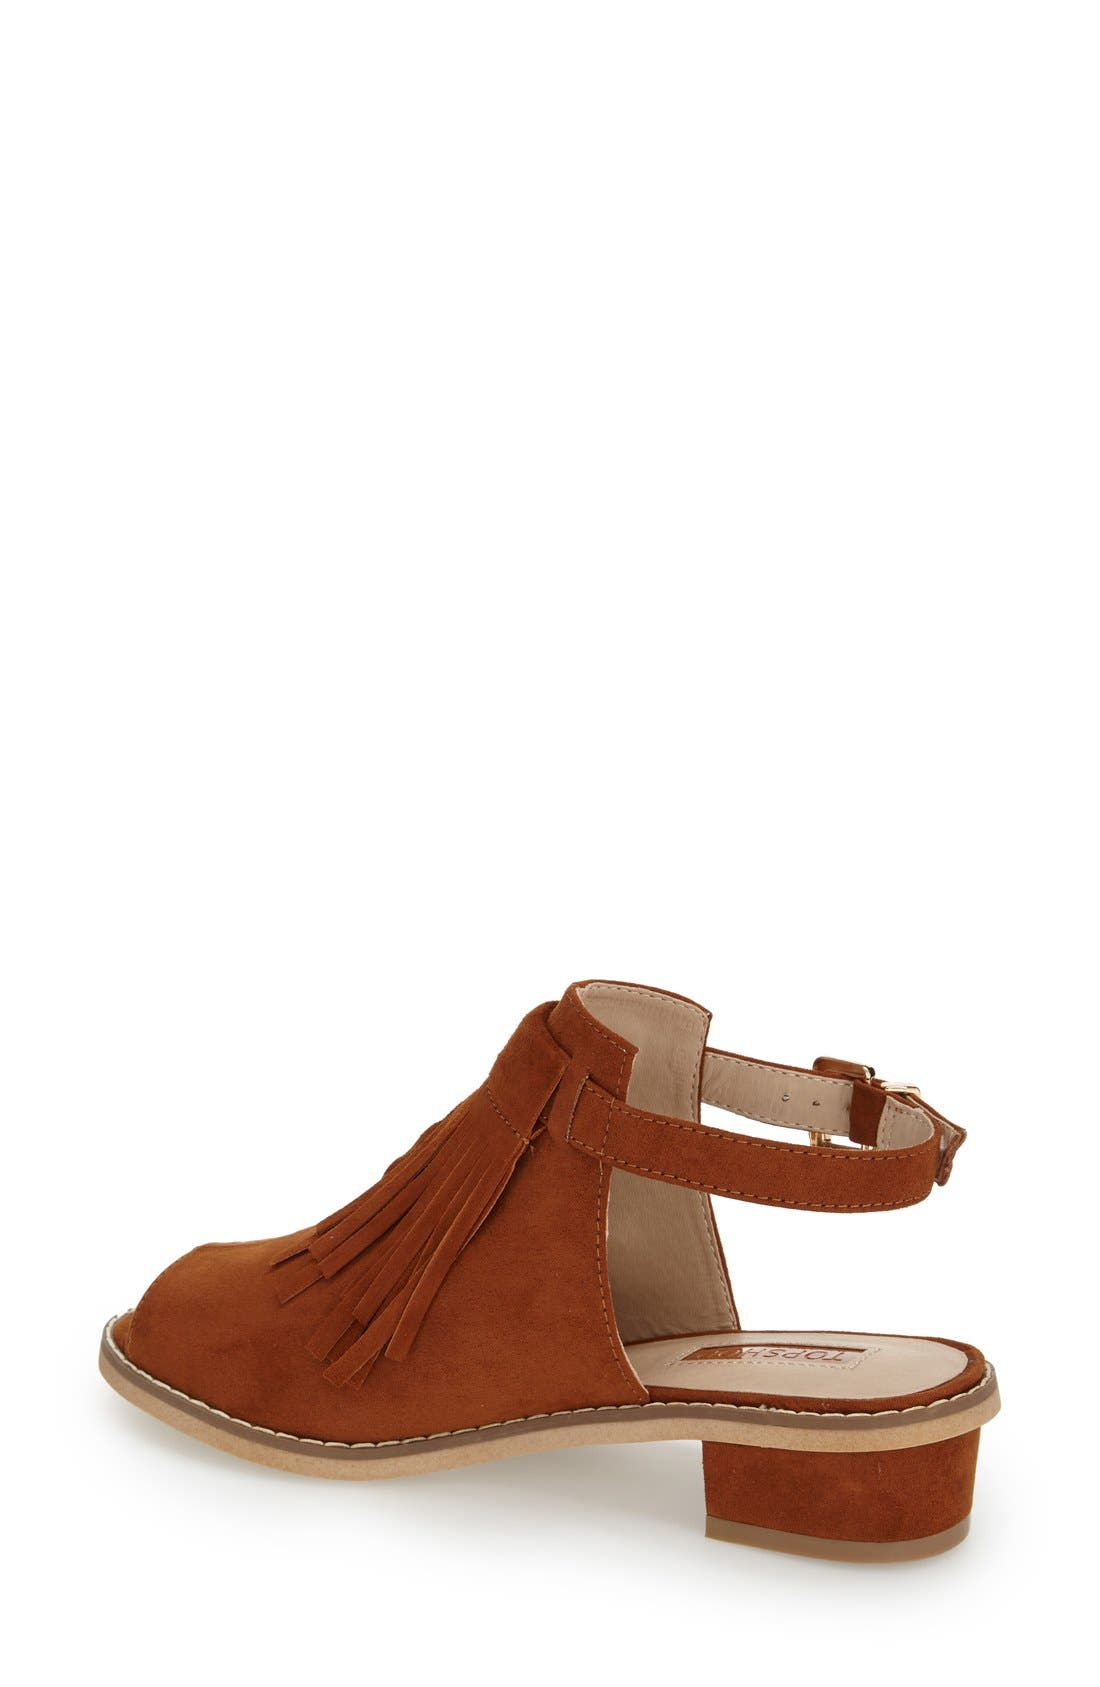 Alternate Image 2  - Topshop 'Blinder' Fringe Sandal (Women)